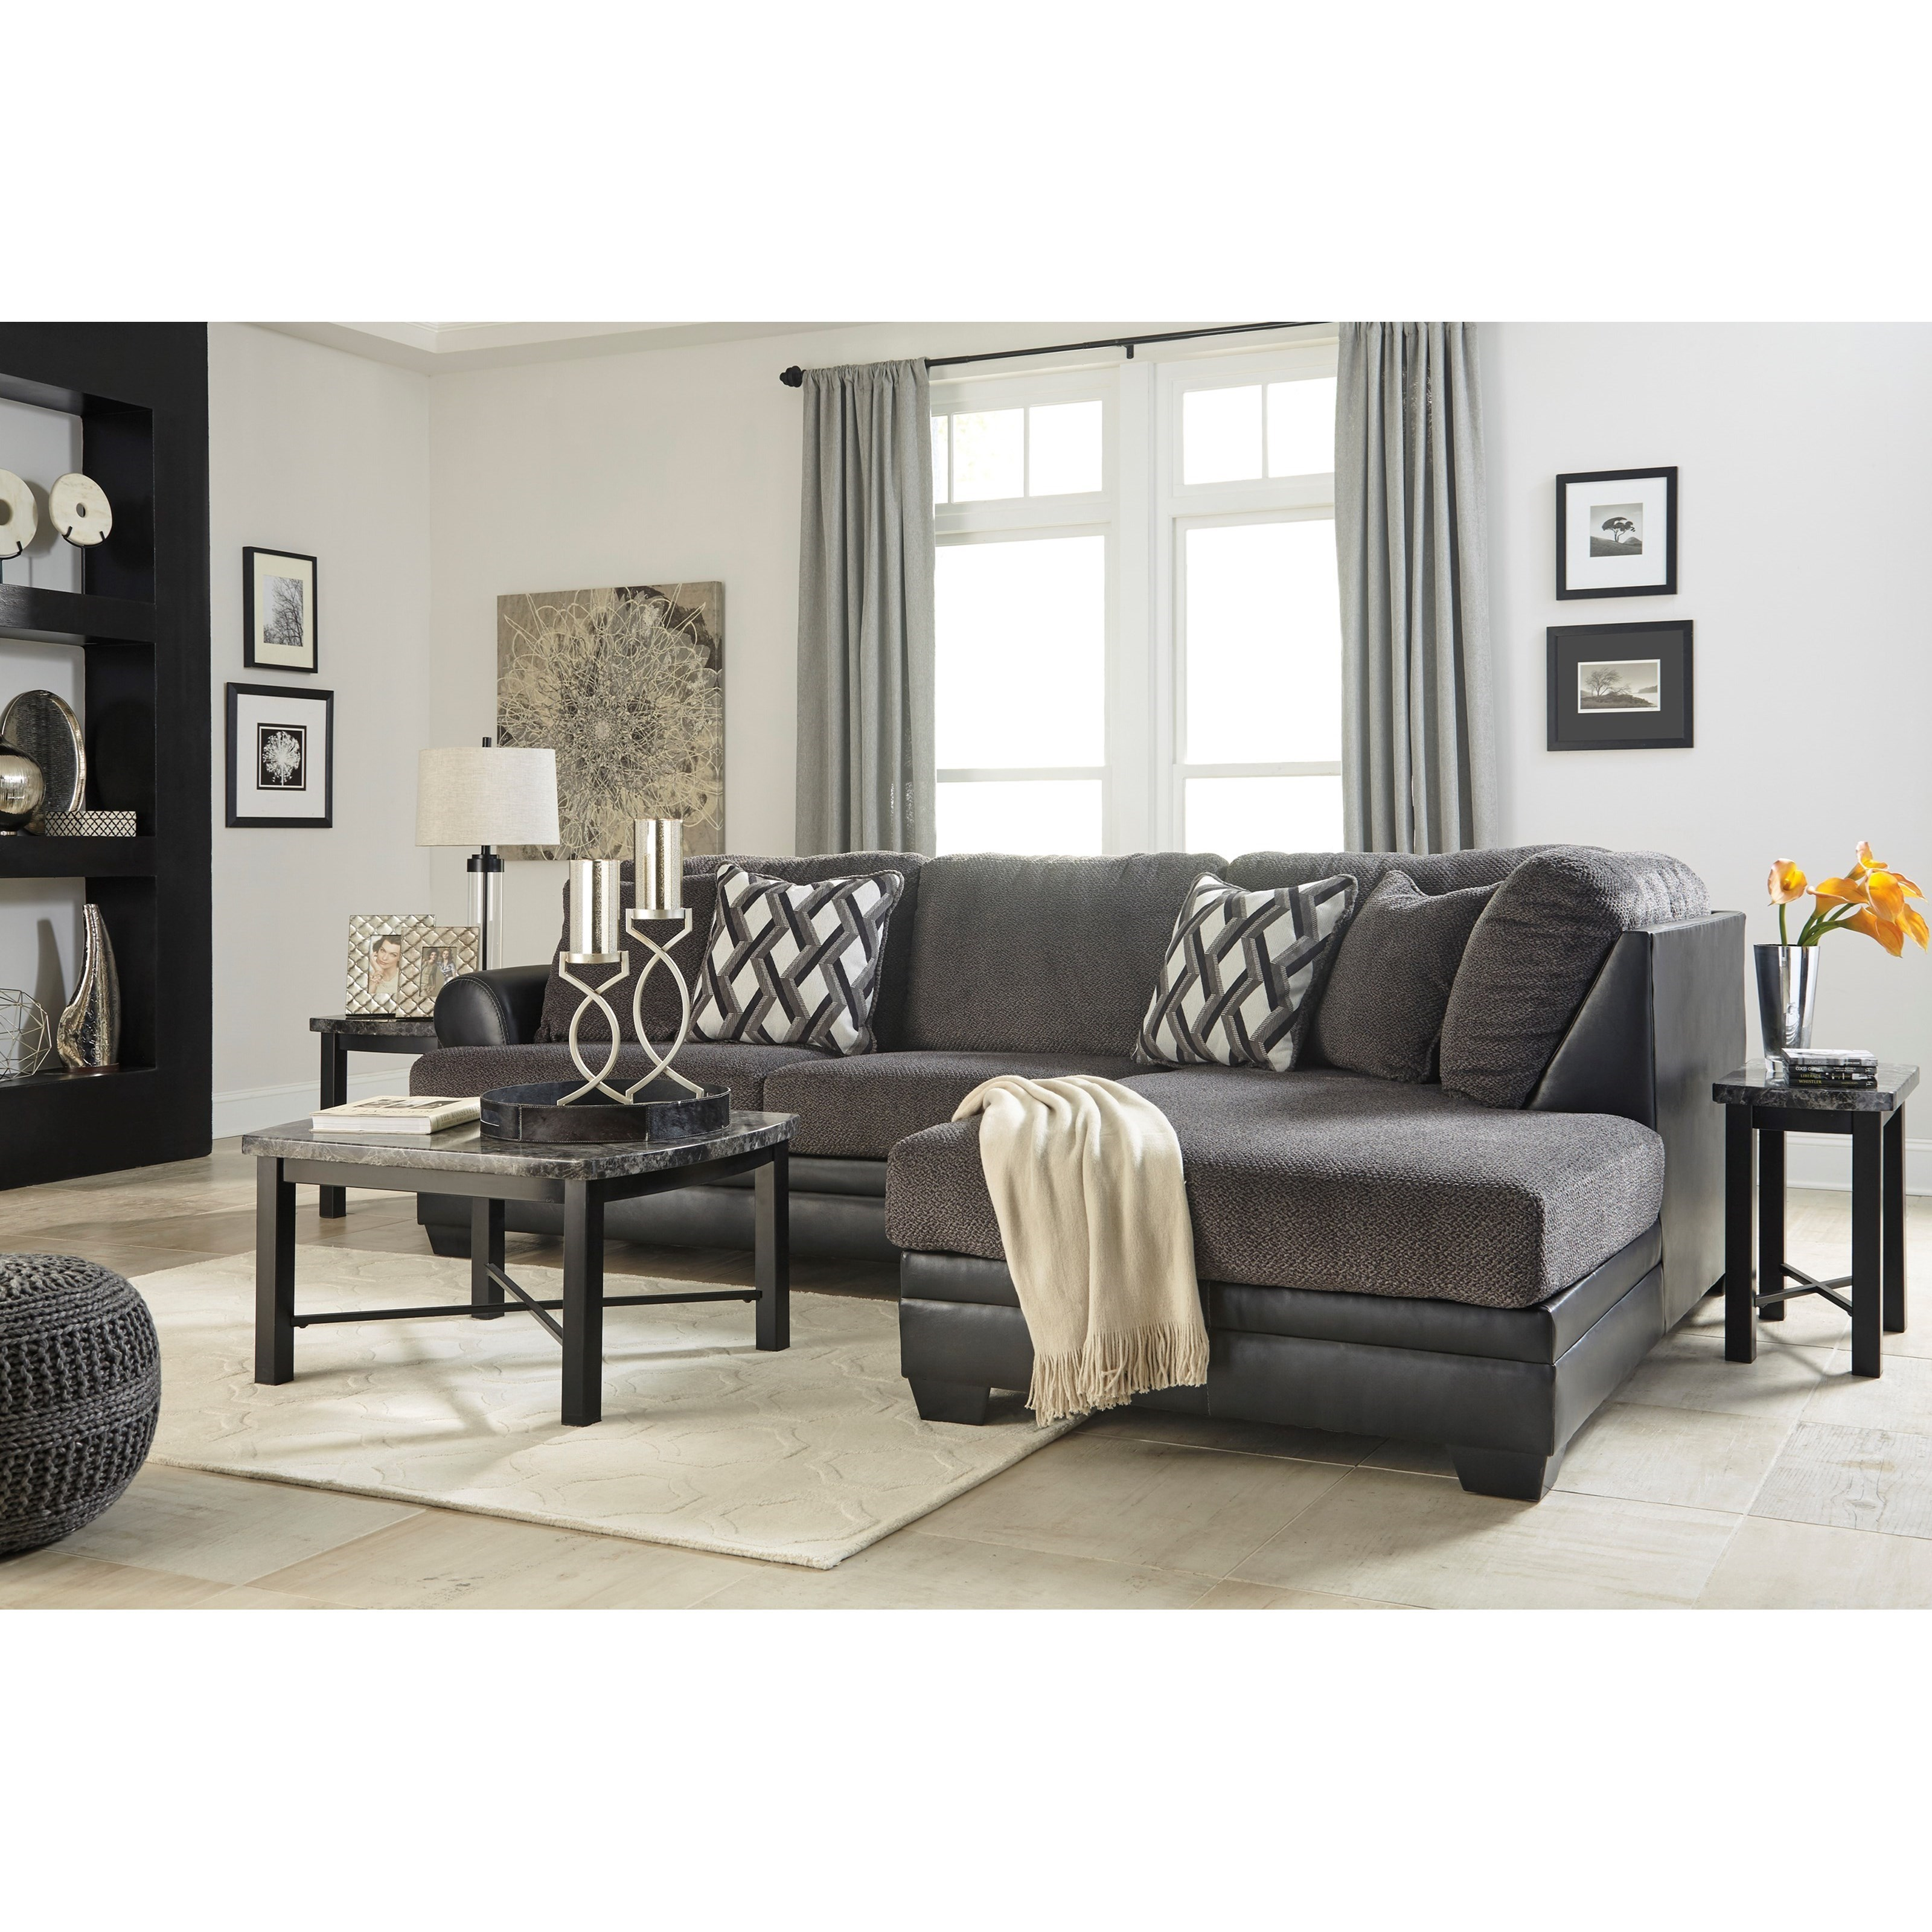 Benchcraft Kumasi 2 Piece Fabric Faux Leather Sectional With Right Chaise Wayside Furniture Sectional Sofas